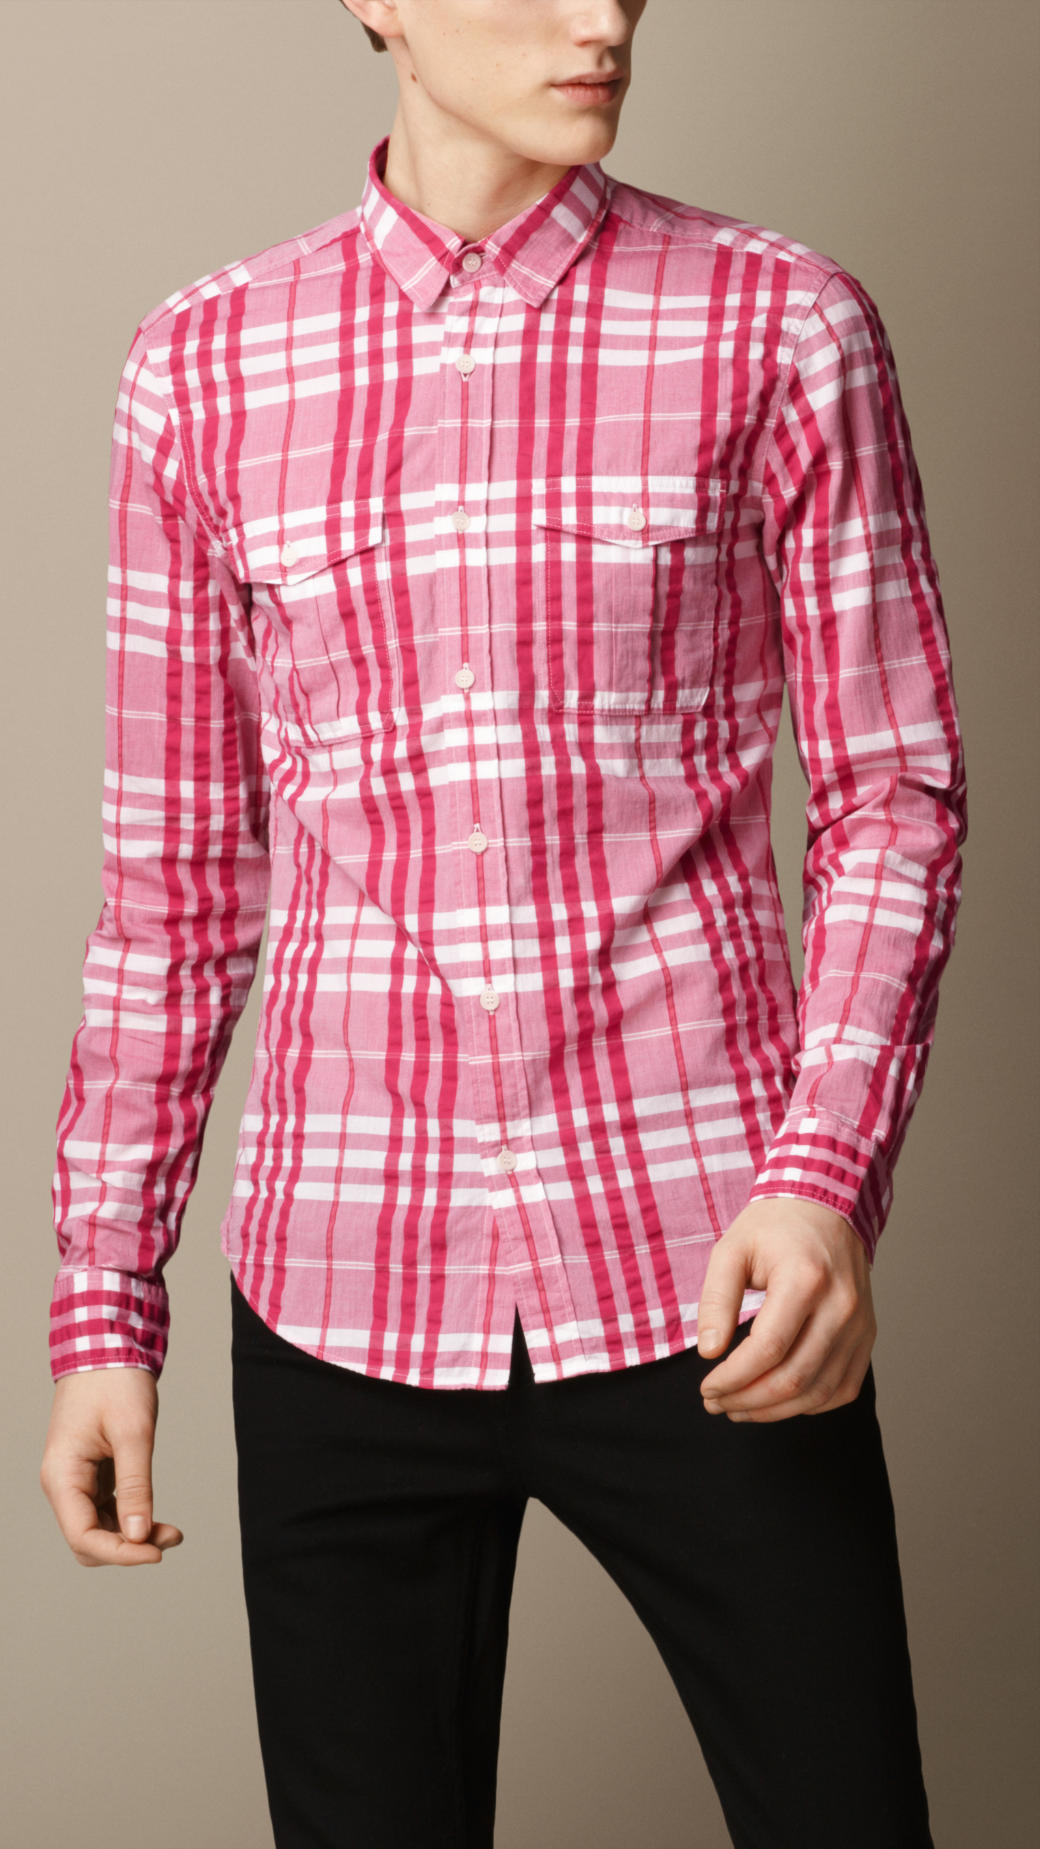 Lyst - Burberry Check Cotton Seersucker Shirt in Pink for Men